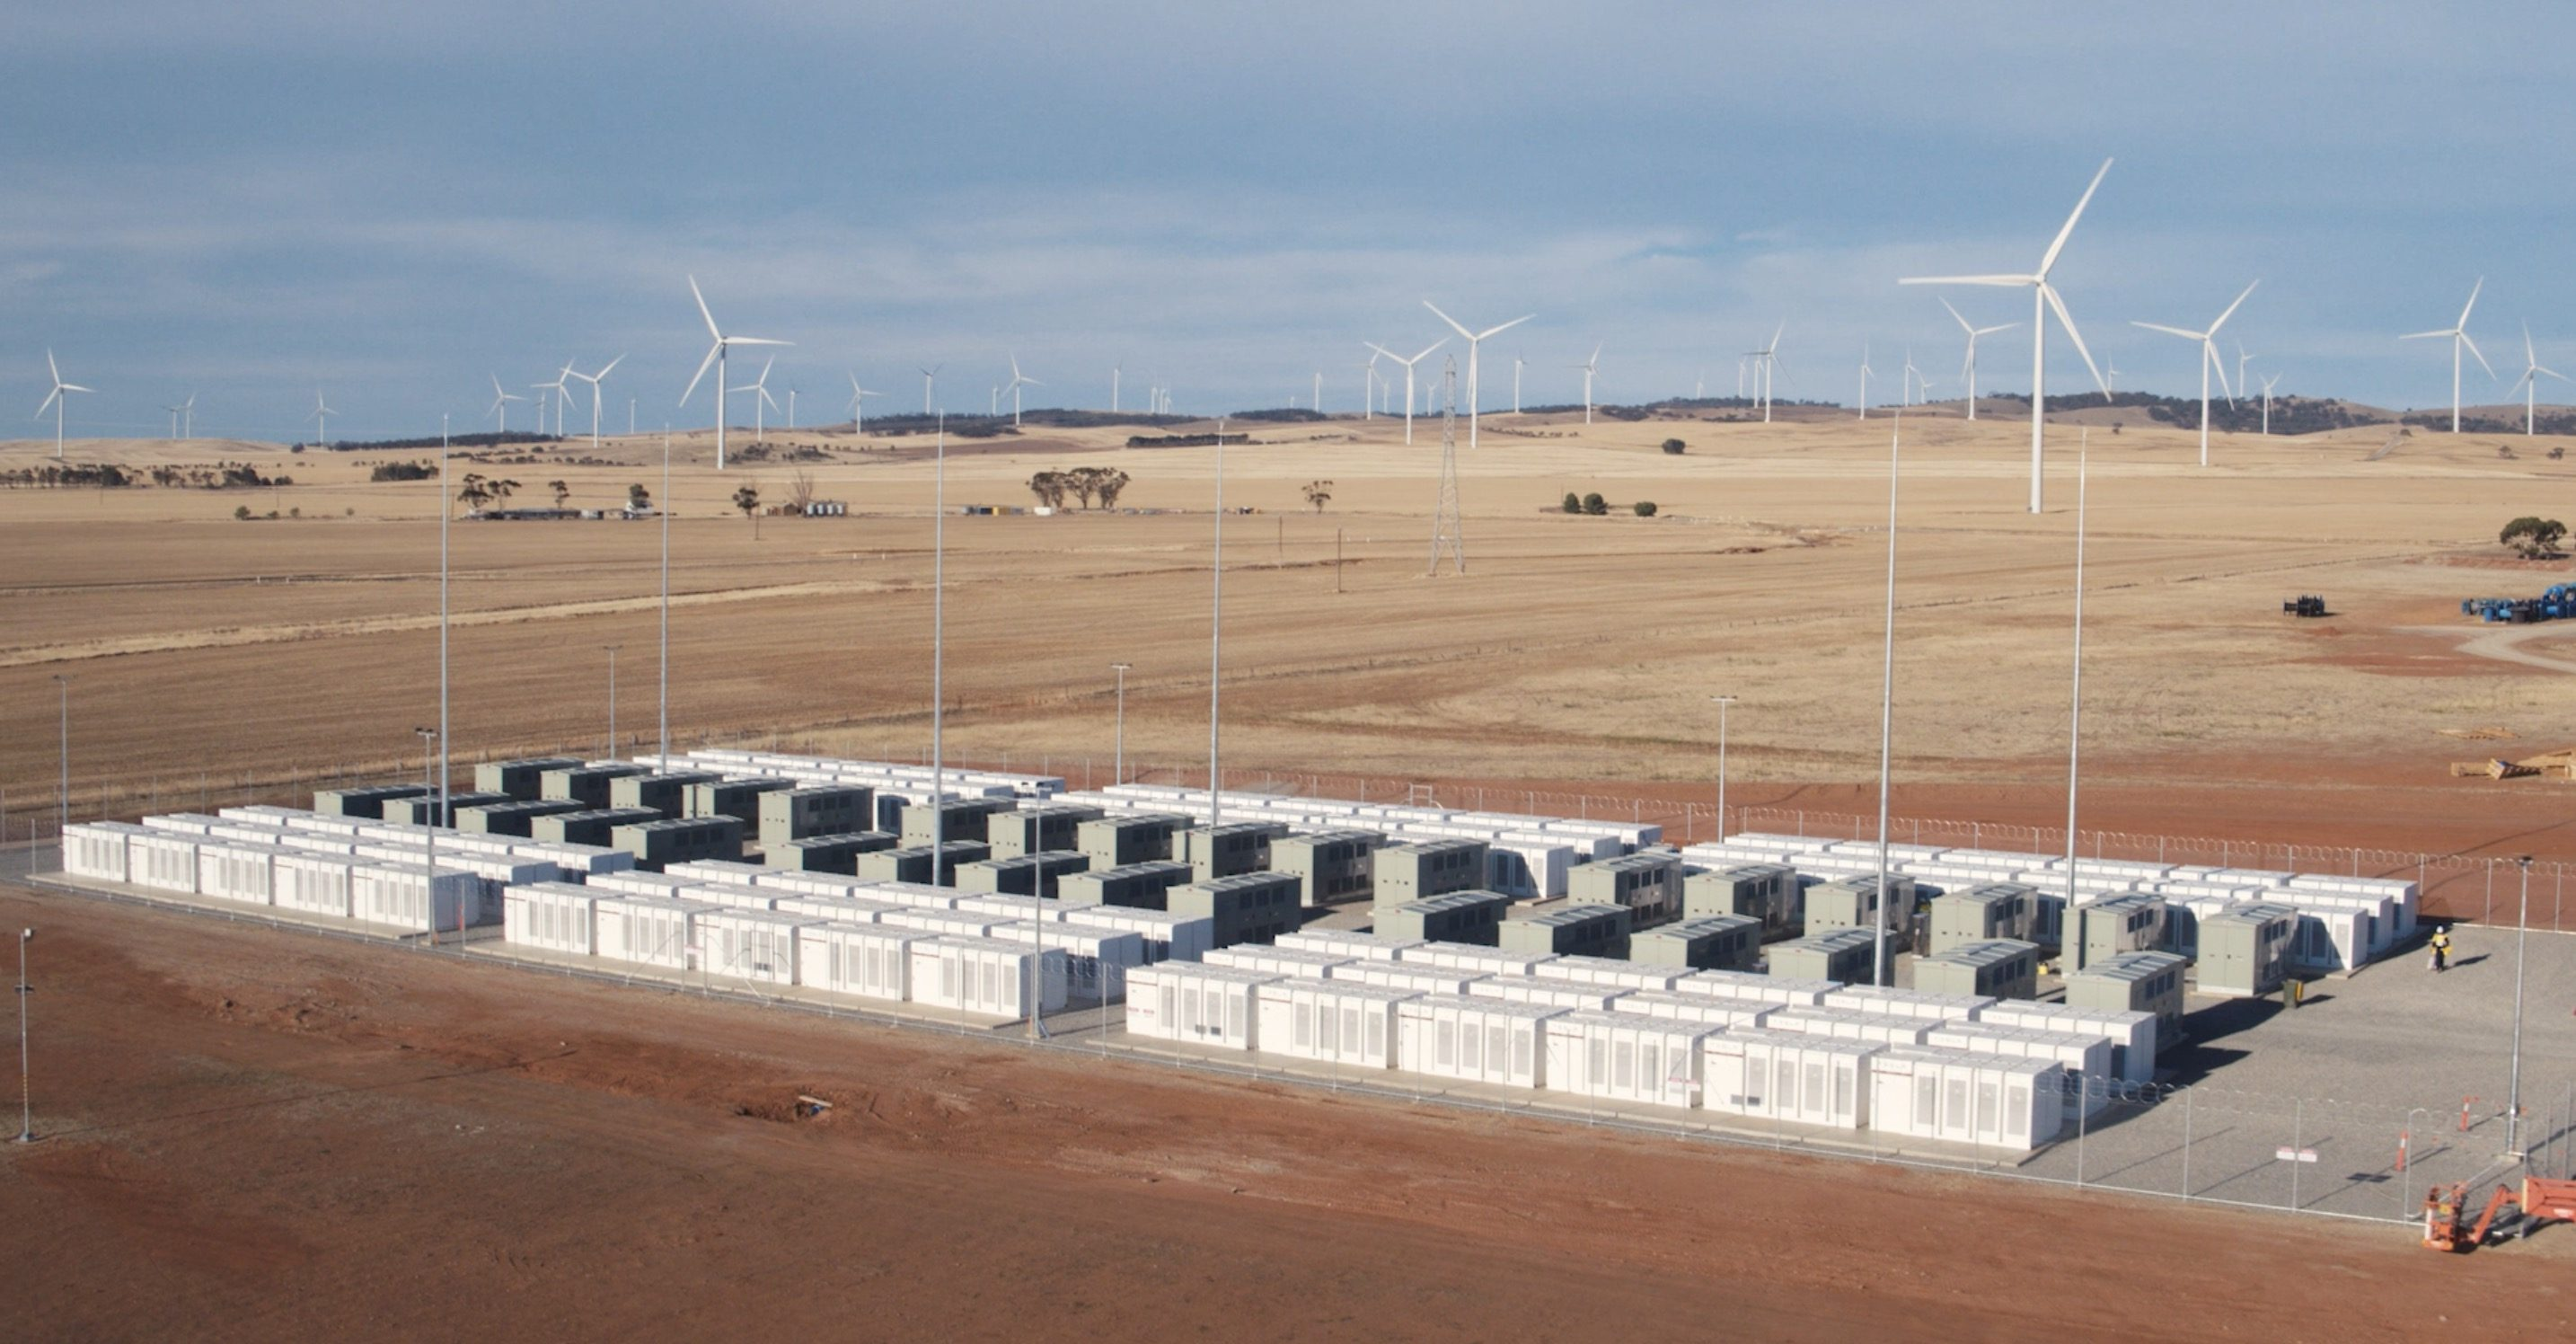 Tesla's big battery made another $4 million on its way to pay for itself